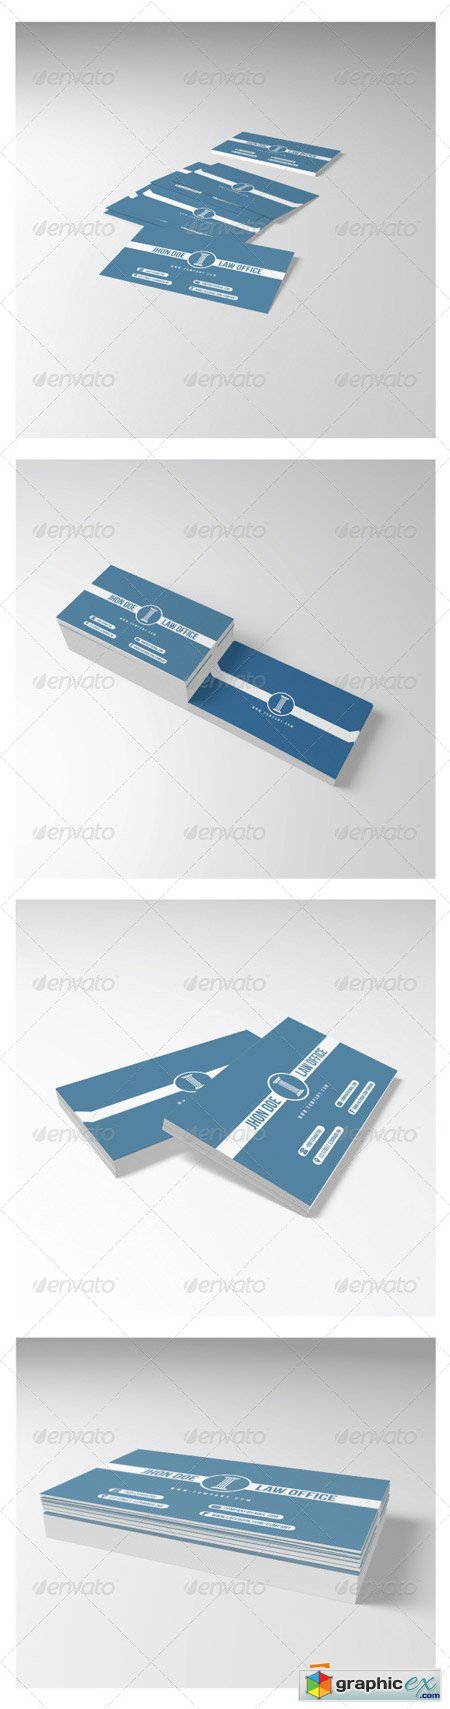 Law Office Business Card 5384177